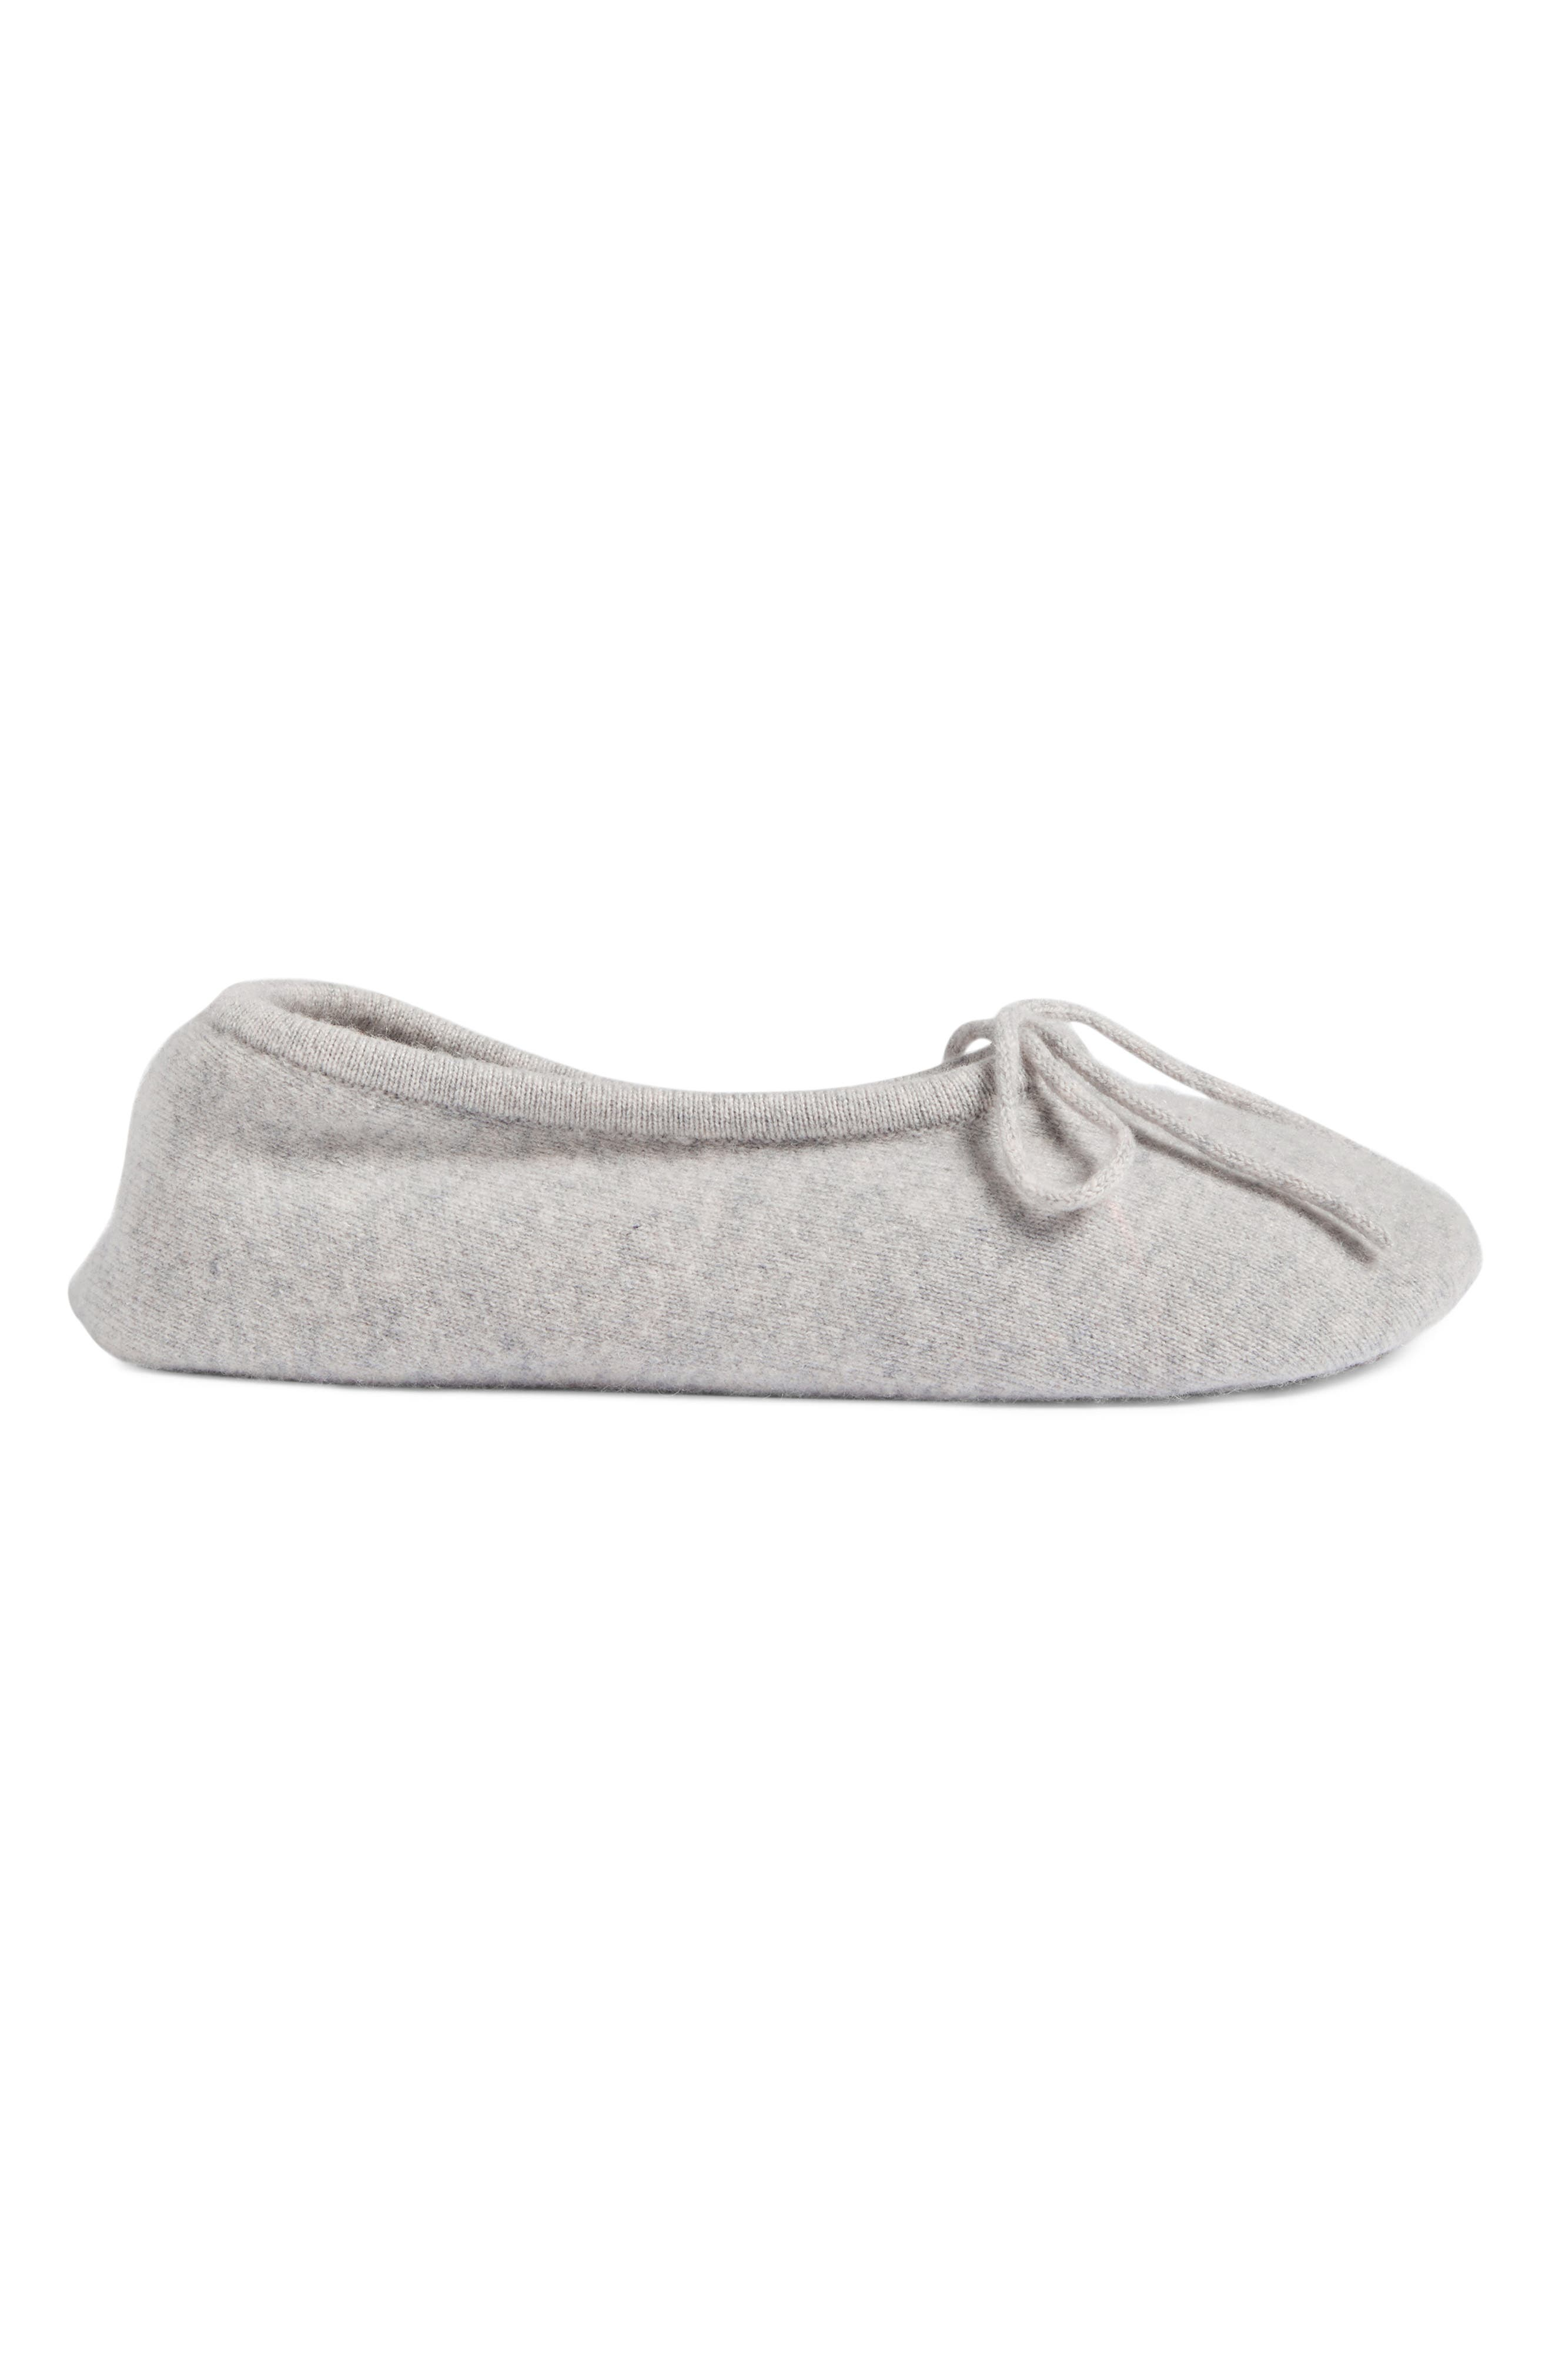 Wool & Cashmere Ballerina Slippers,                             Alternate thumbnail 3, color,                             Grey Soft Heather